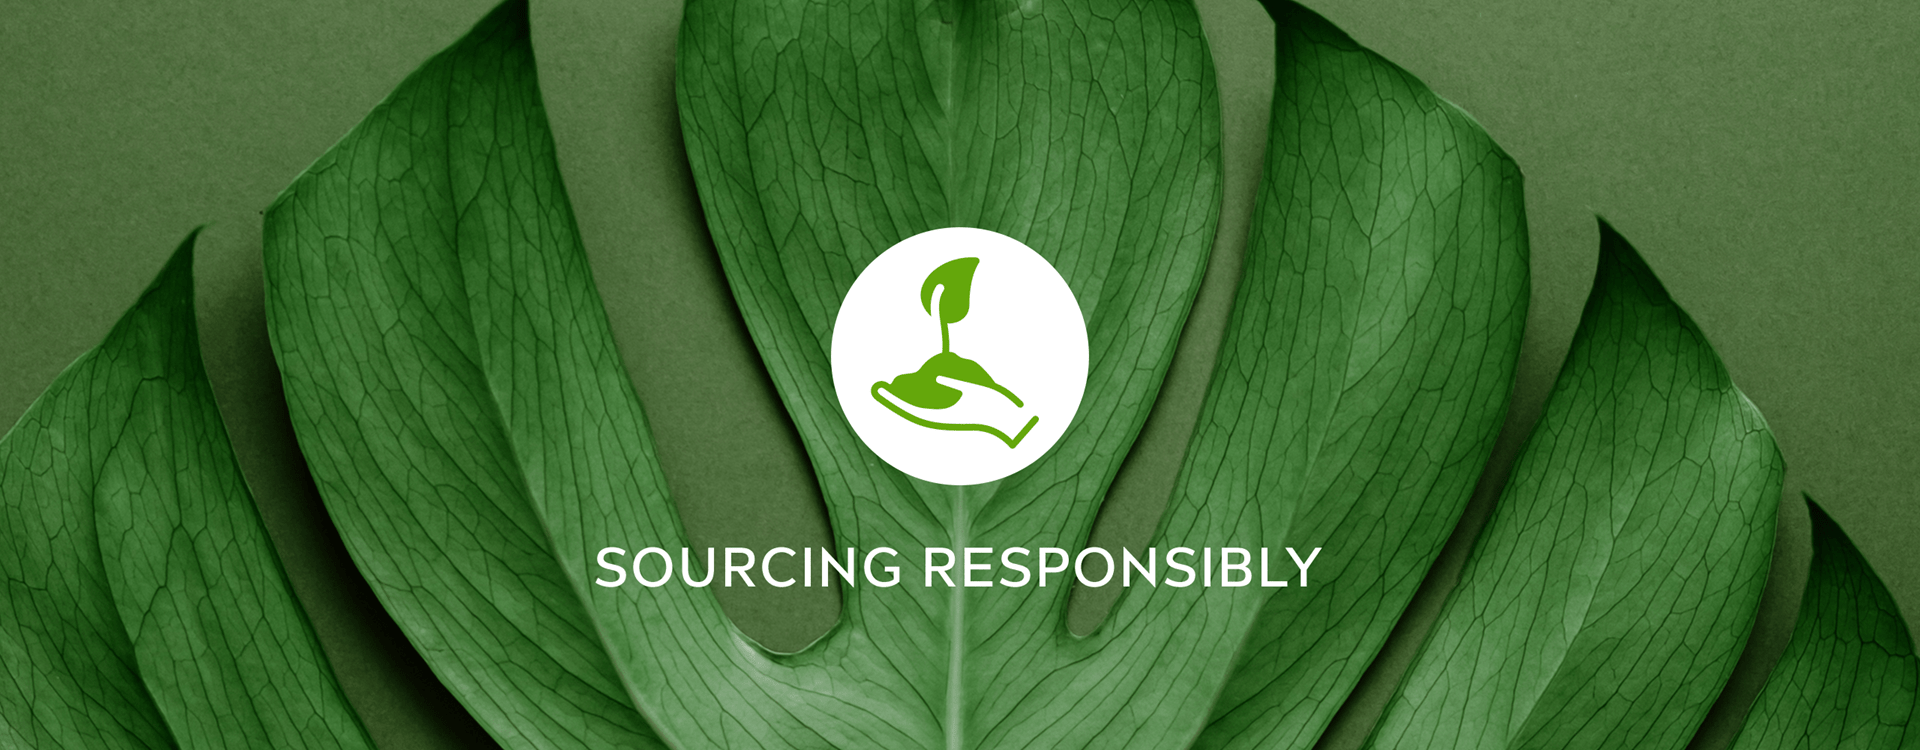 Sourcing Responsibly